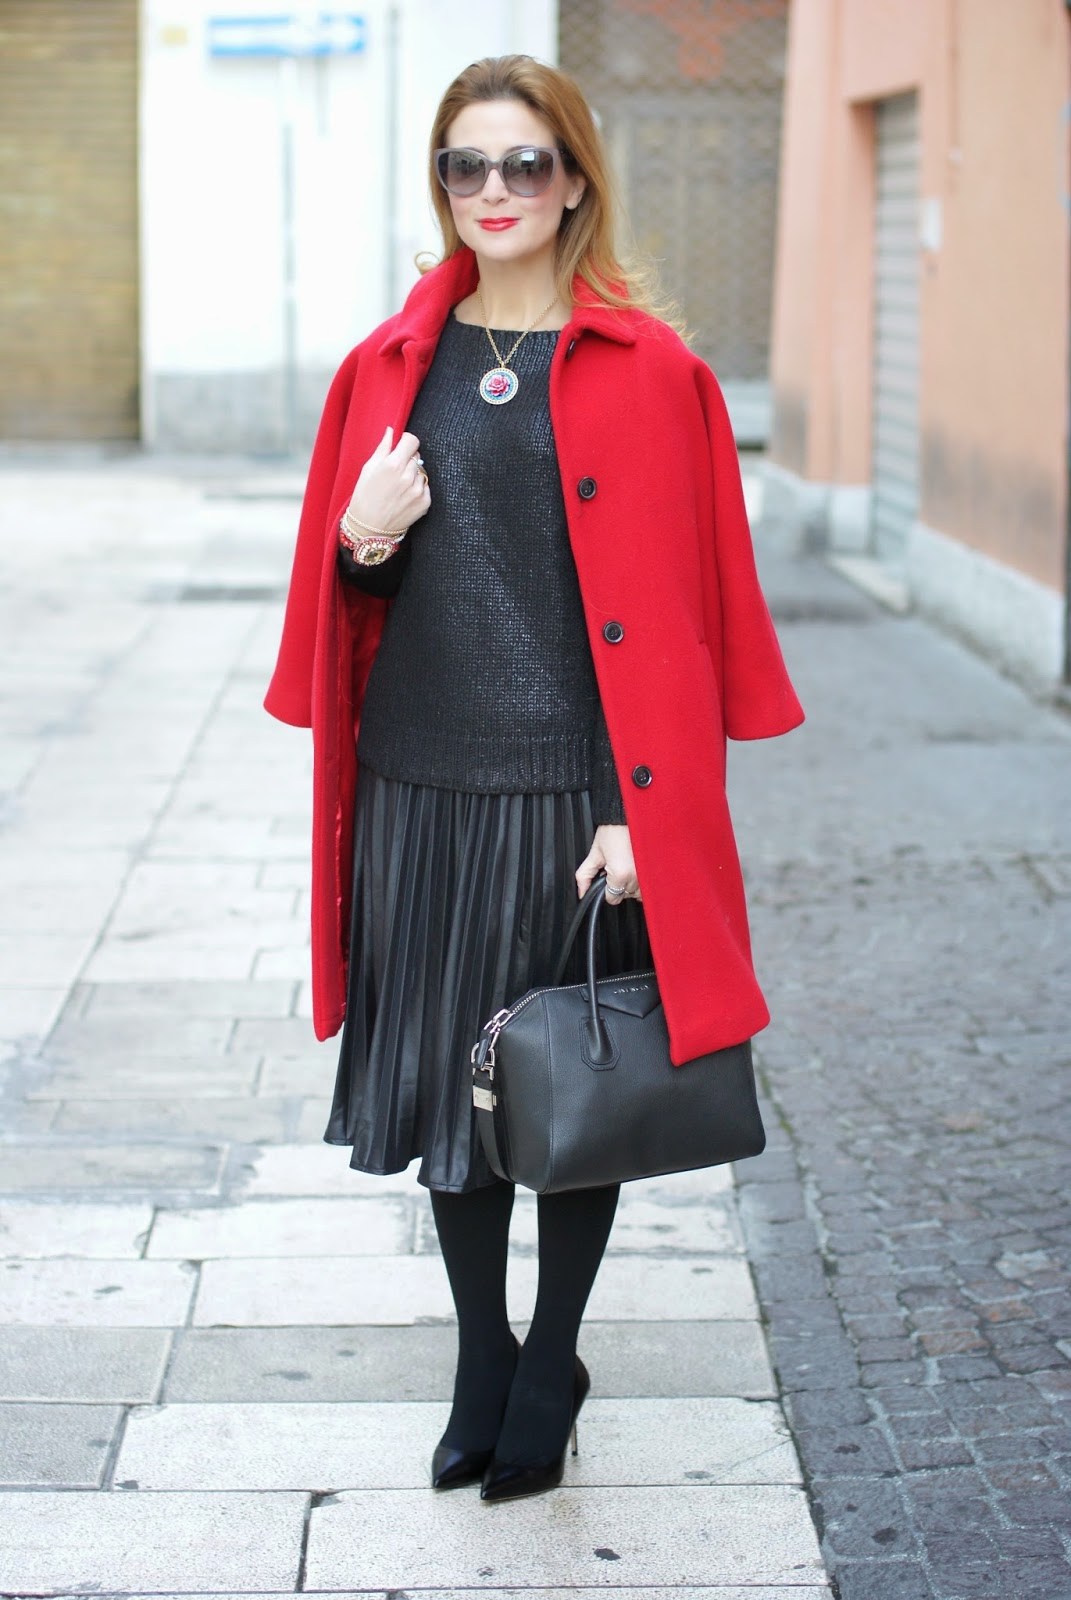 red Kiomi coat, Baracuta scarf, Le Silla shoes, Givenchy Antigona bag, Fashion and Cookies, fashion blogger